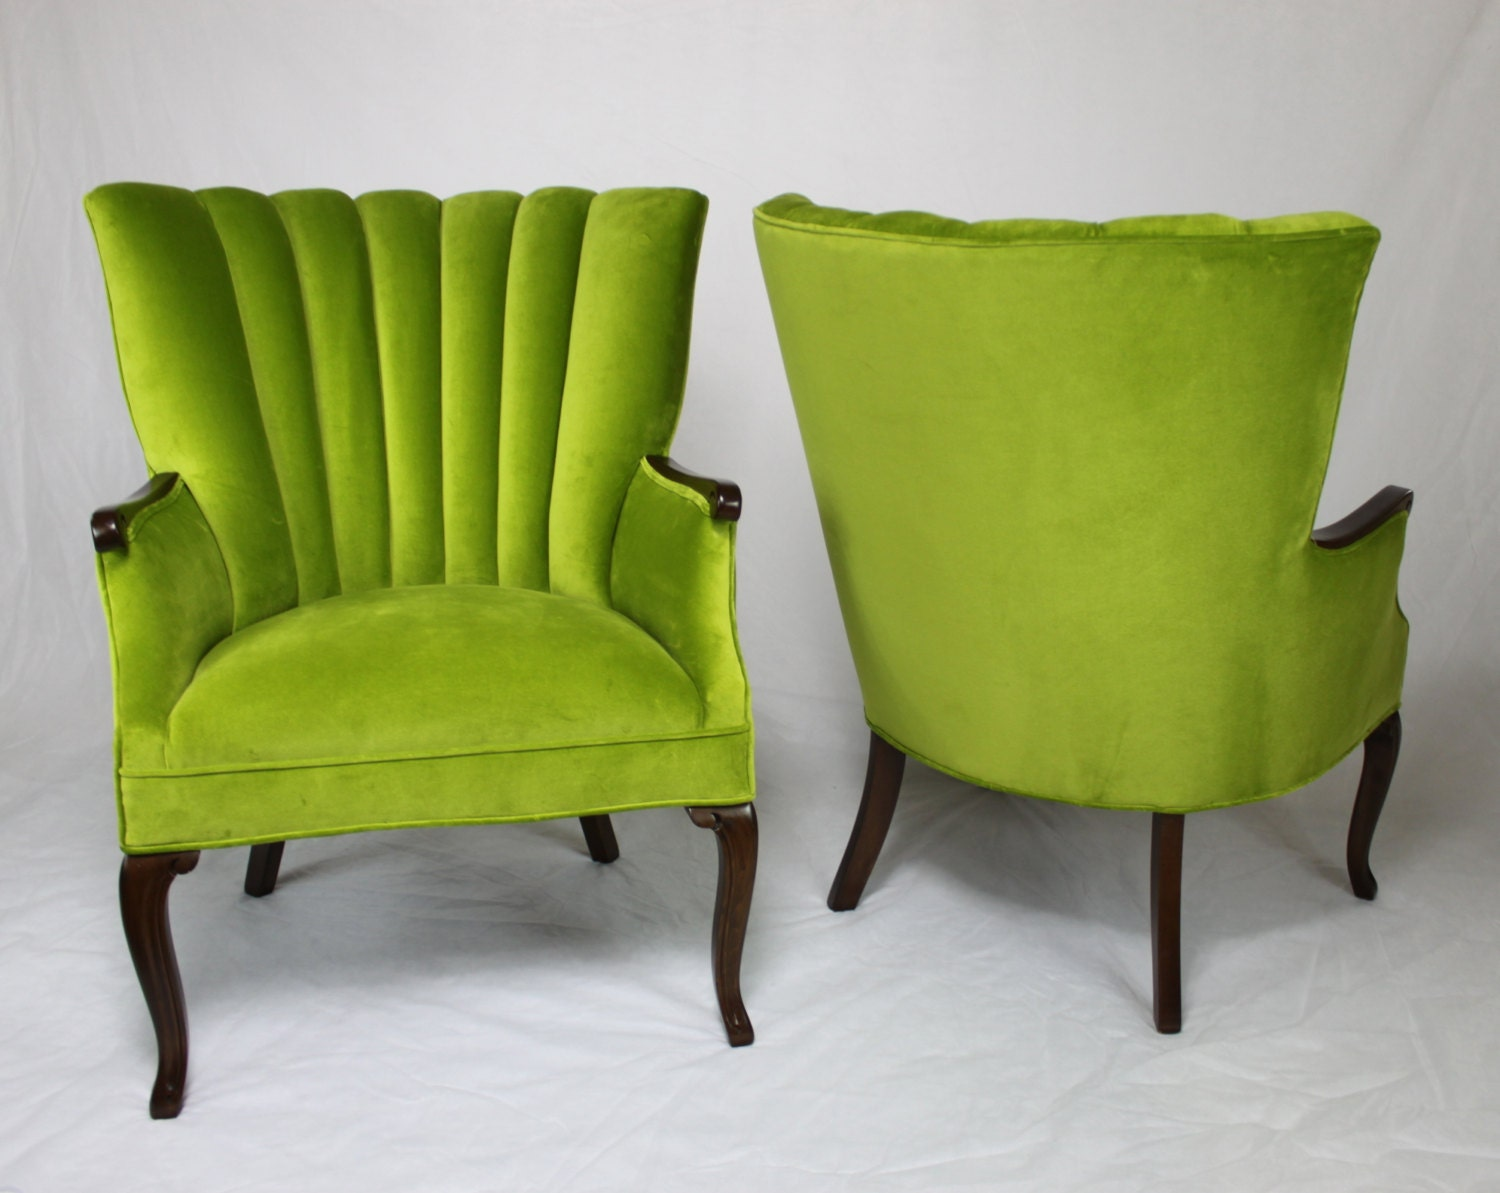 Antique velvet chair - Sold Pair Of Vintage Antique Channel Back Chairs In Apple Green Velvet With Medium